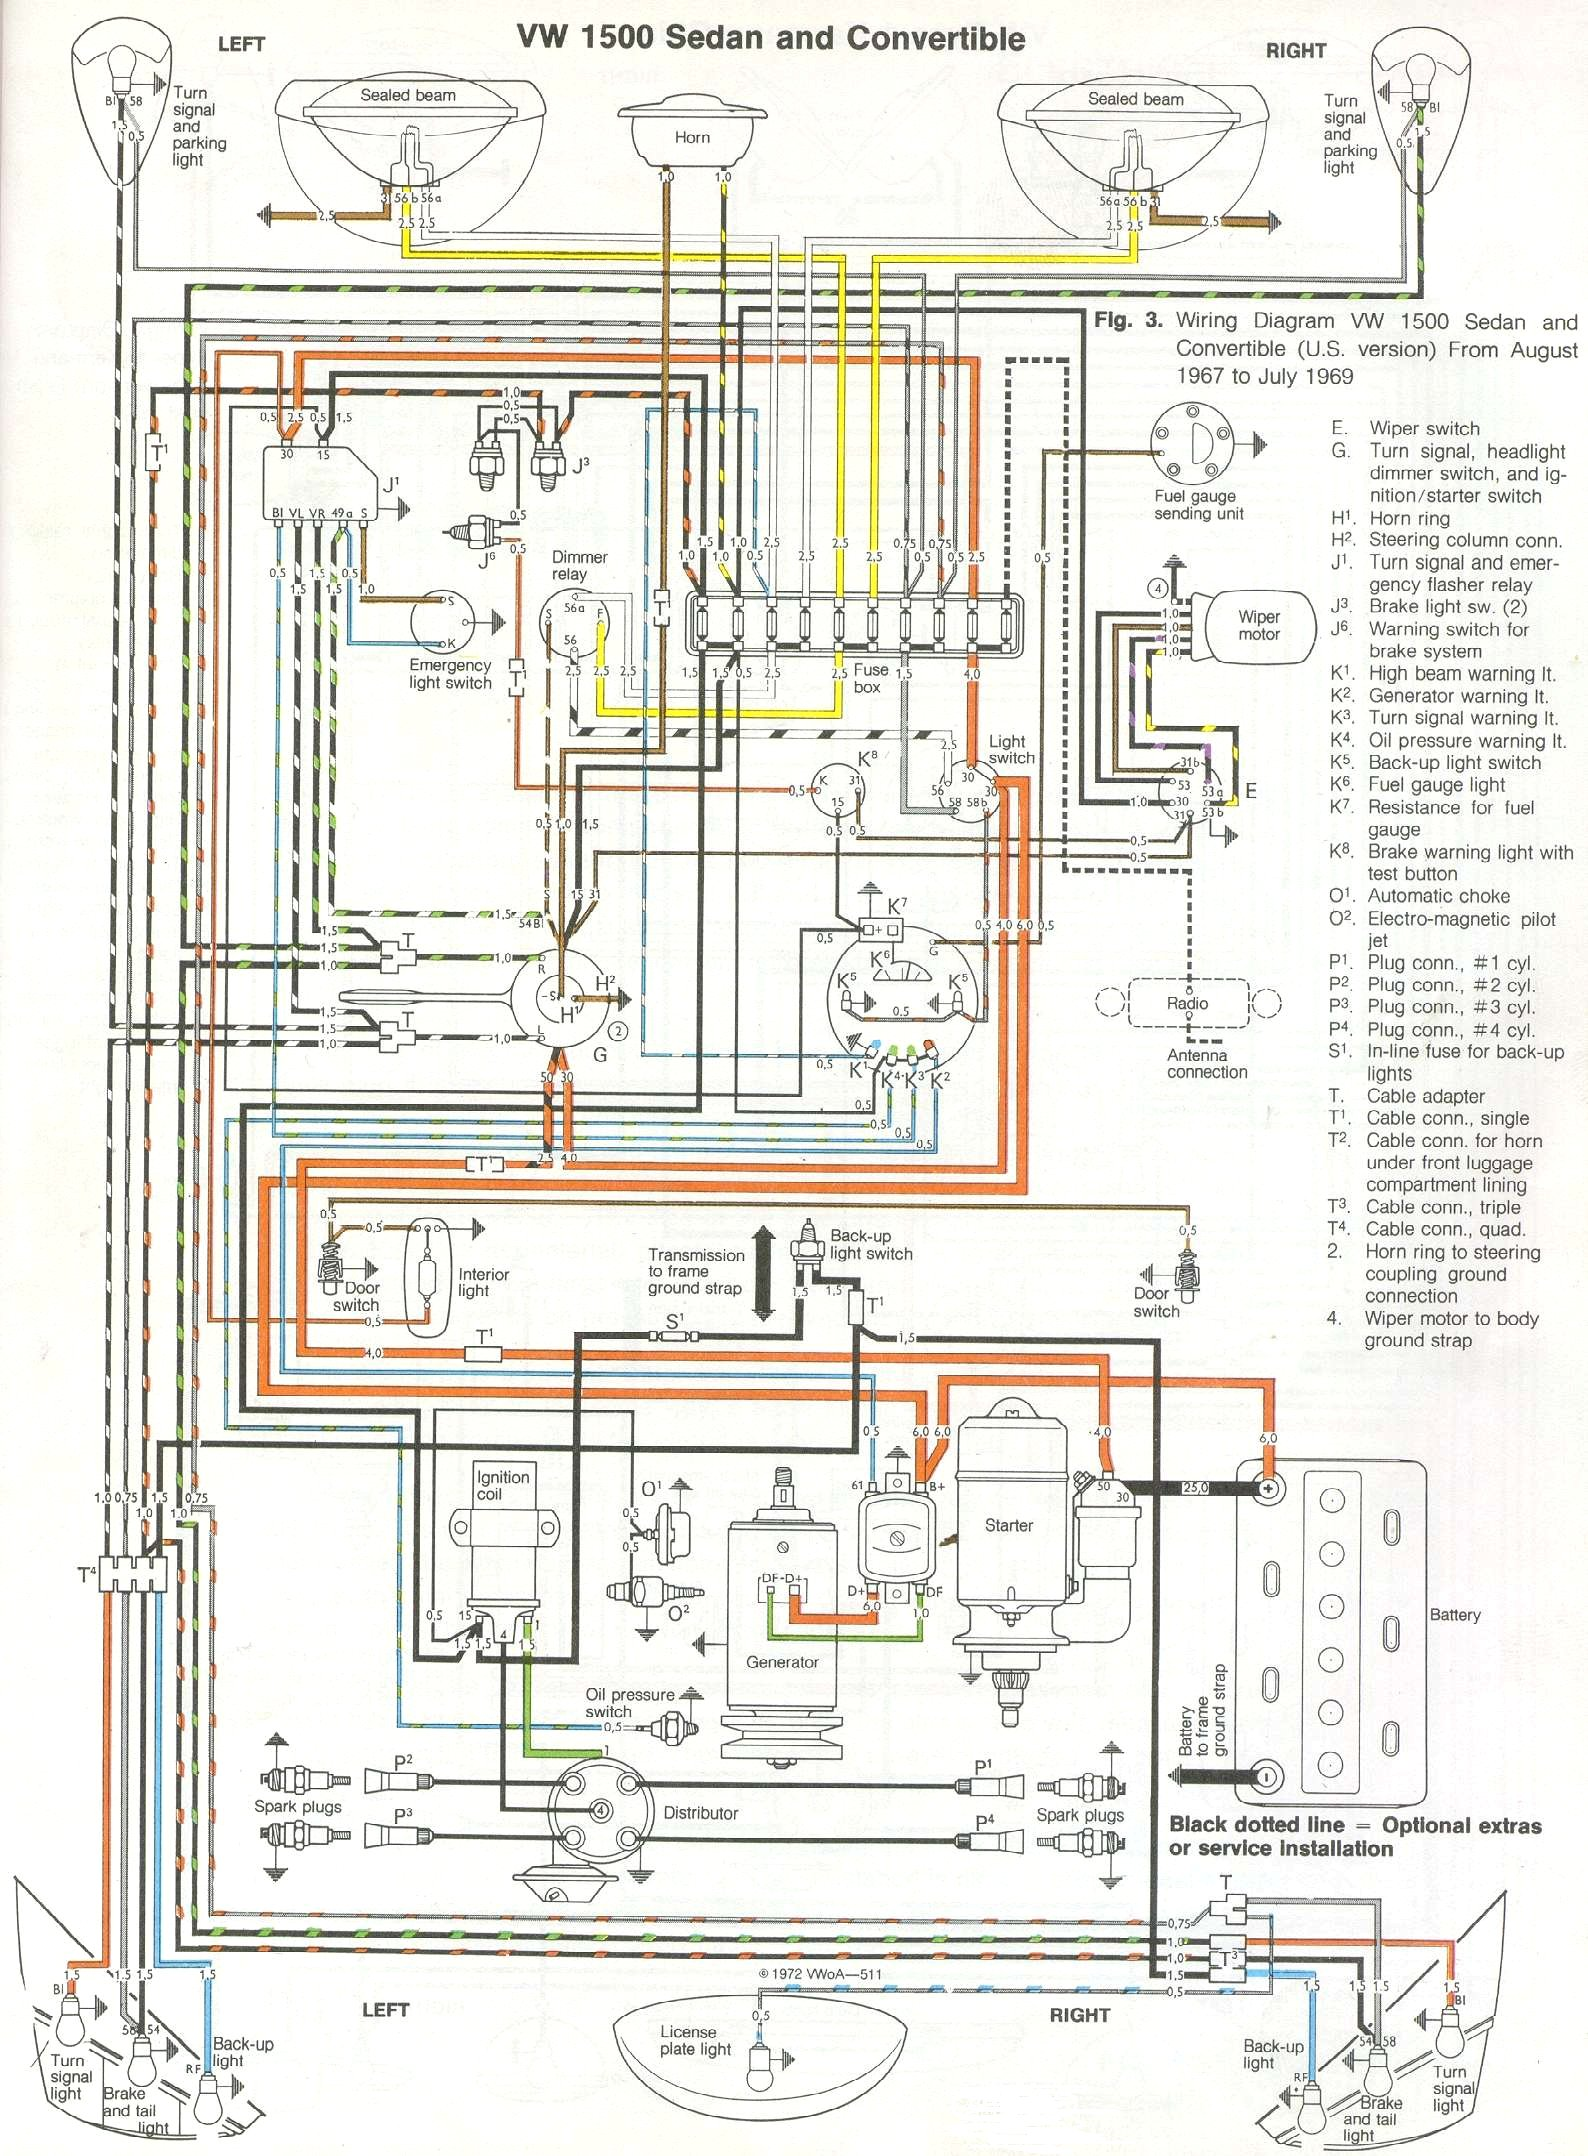 bug_6869 vw wiring harness diagram vw wiring diagrams instruction empi wiring harness diagram at panicattacktreatment.co